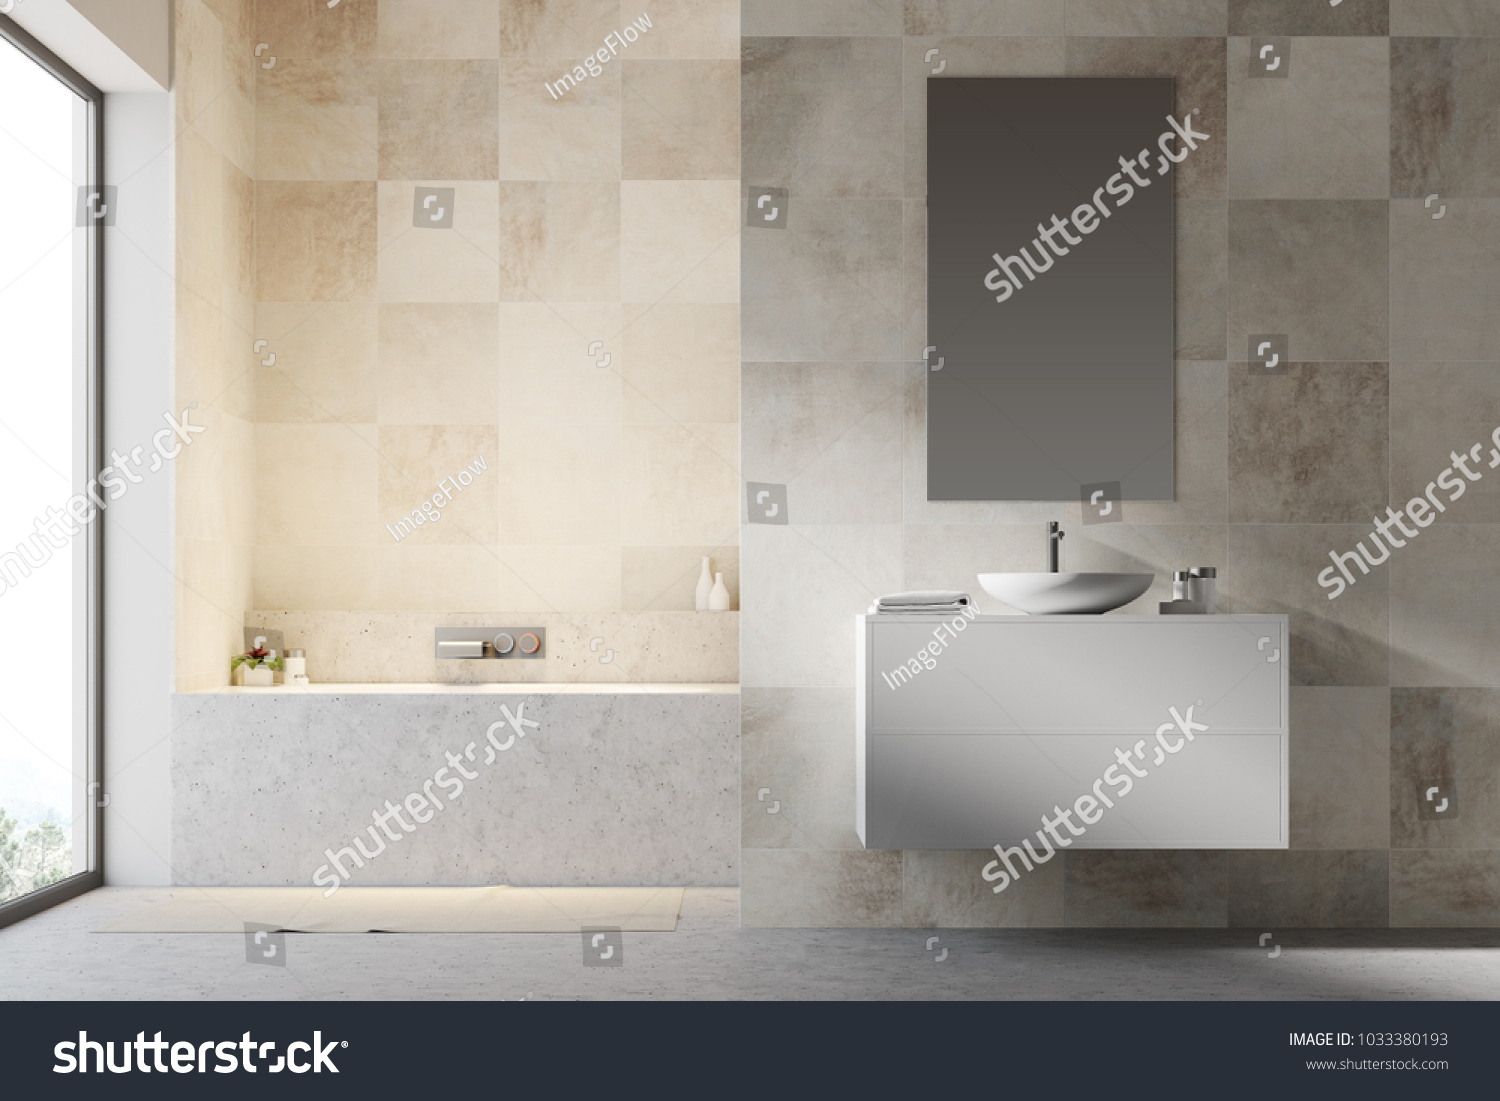 White Tiled Bathroom Interior Concrete Floor Stock Illustration ...